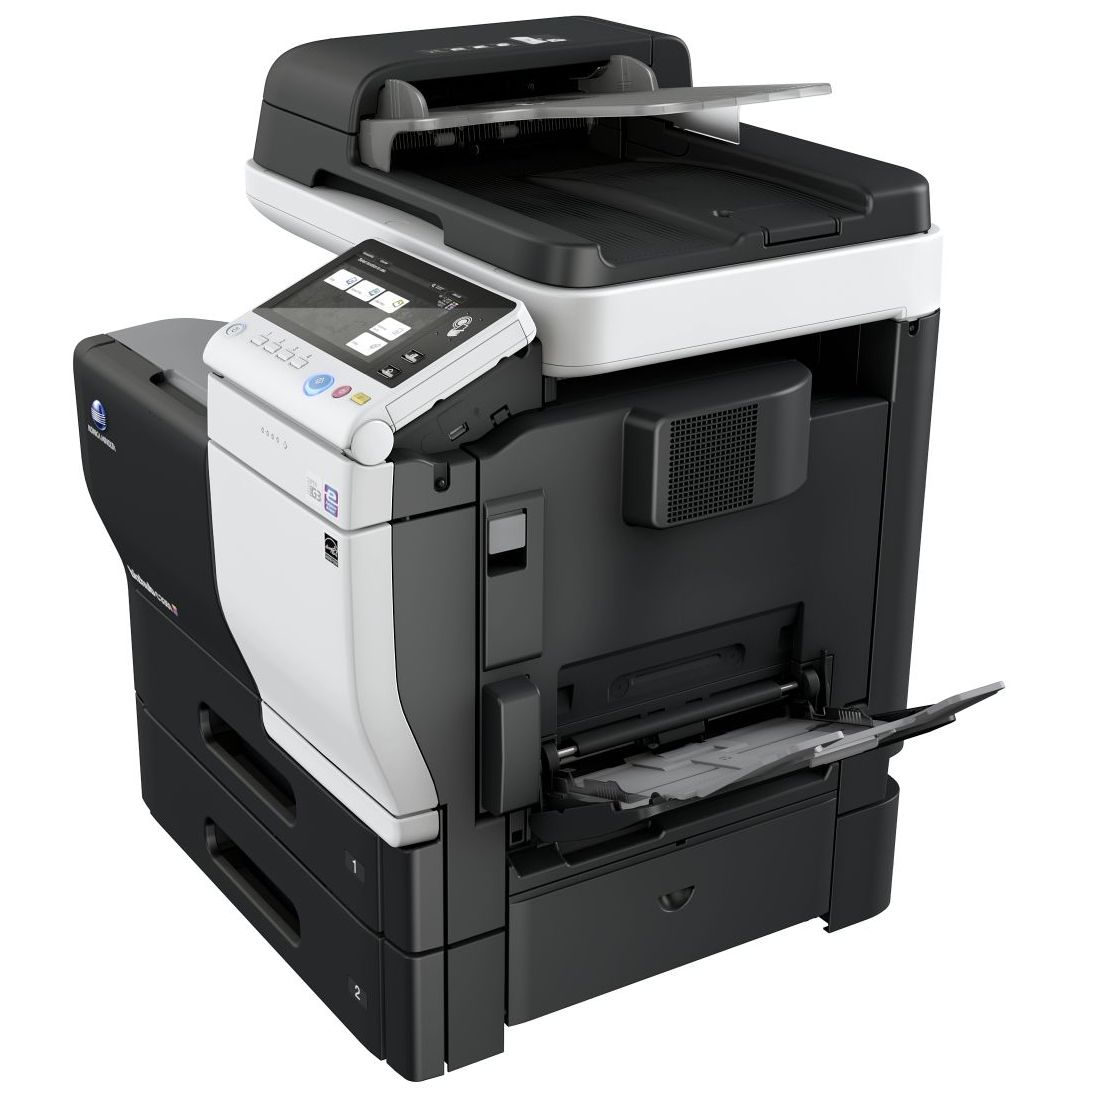 KONICA MINOLTA BIZHUB C654E PRINTER PSPCLFAX DRIVER FOR WINDOWS DOWNLOAD